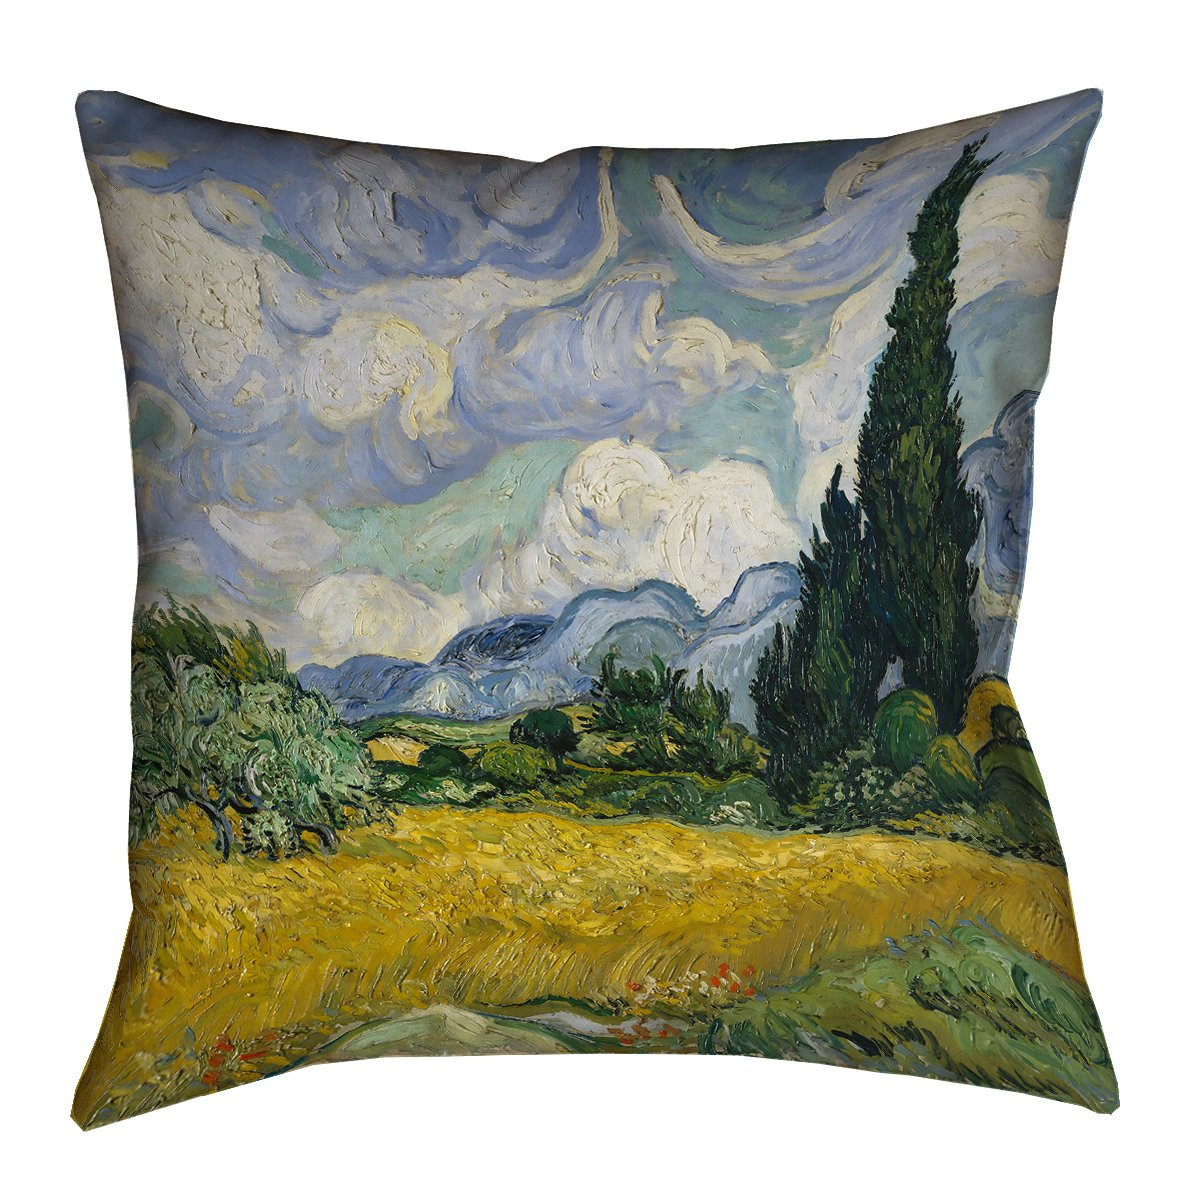 ArtVerse Vincent Van Gogh 28' x 28' Floor Double Sided Print with Concealed Zipper & Insert Wheatfield with Cypresses Pillow VAN001F2828L